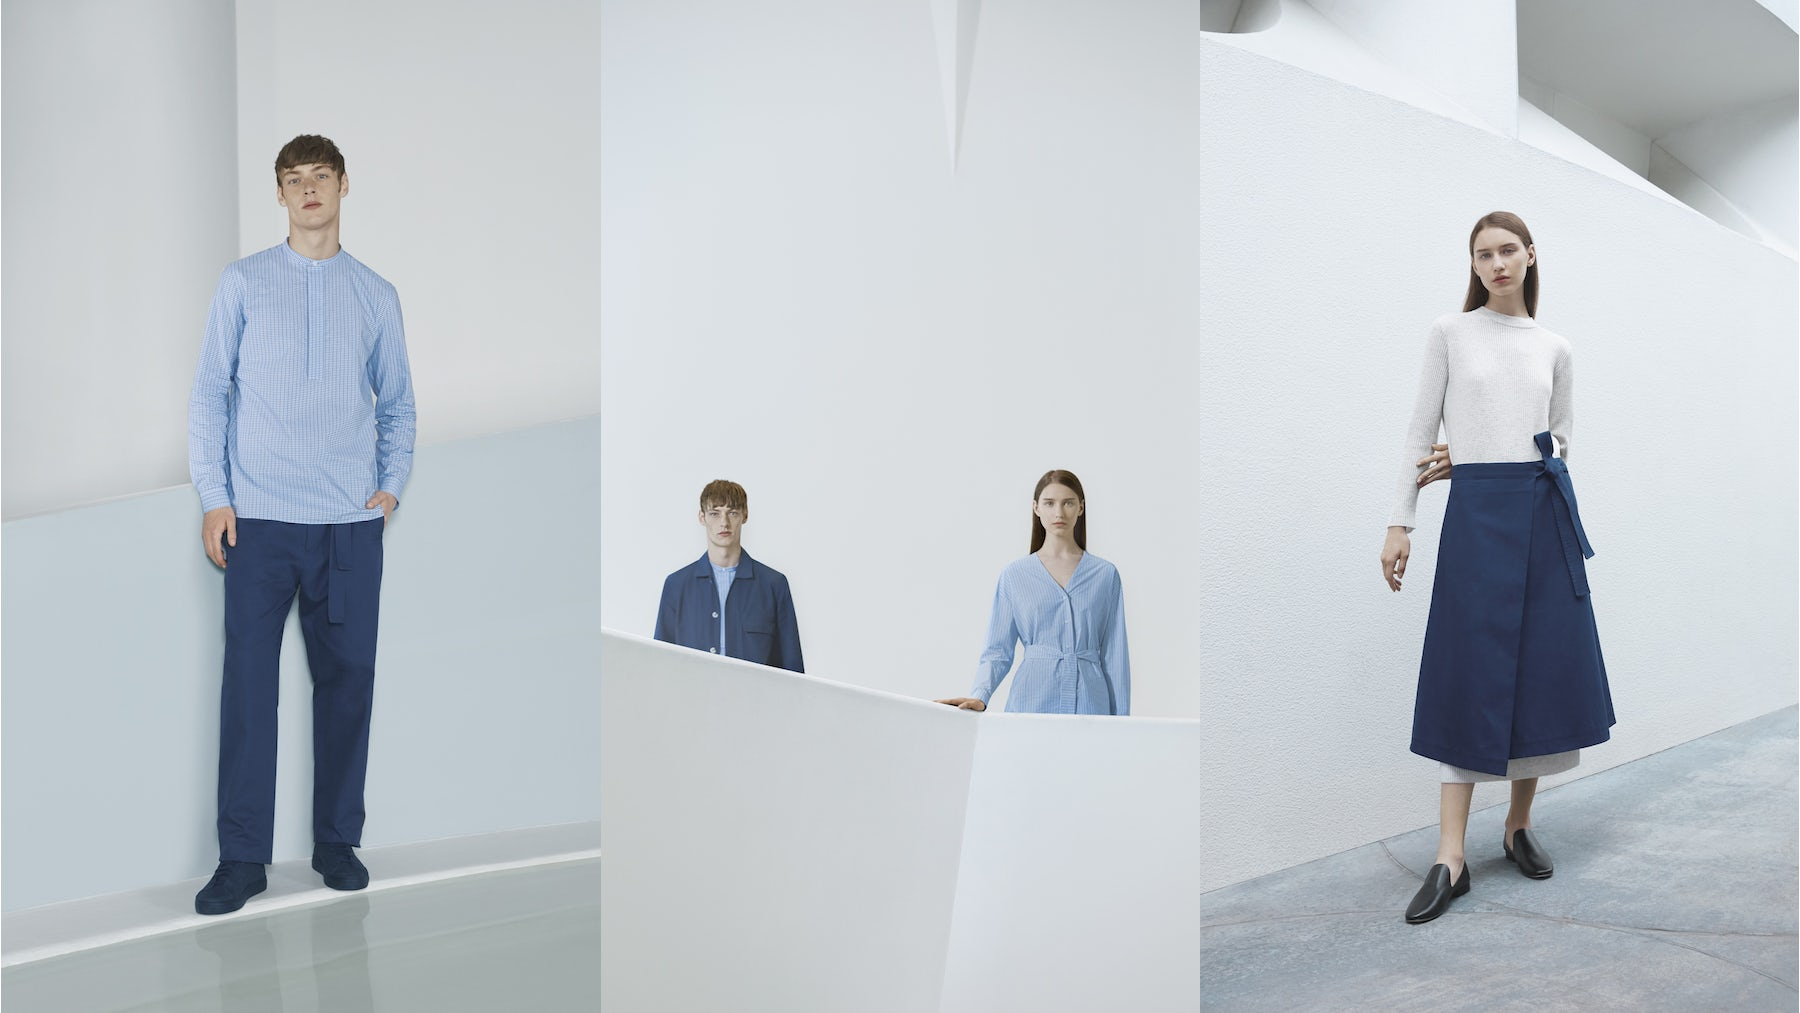 Agnes Martin x Cos, Shot on location at the Solomon R. Guggenheim Museum, New York | Source: Courtesy